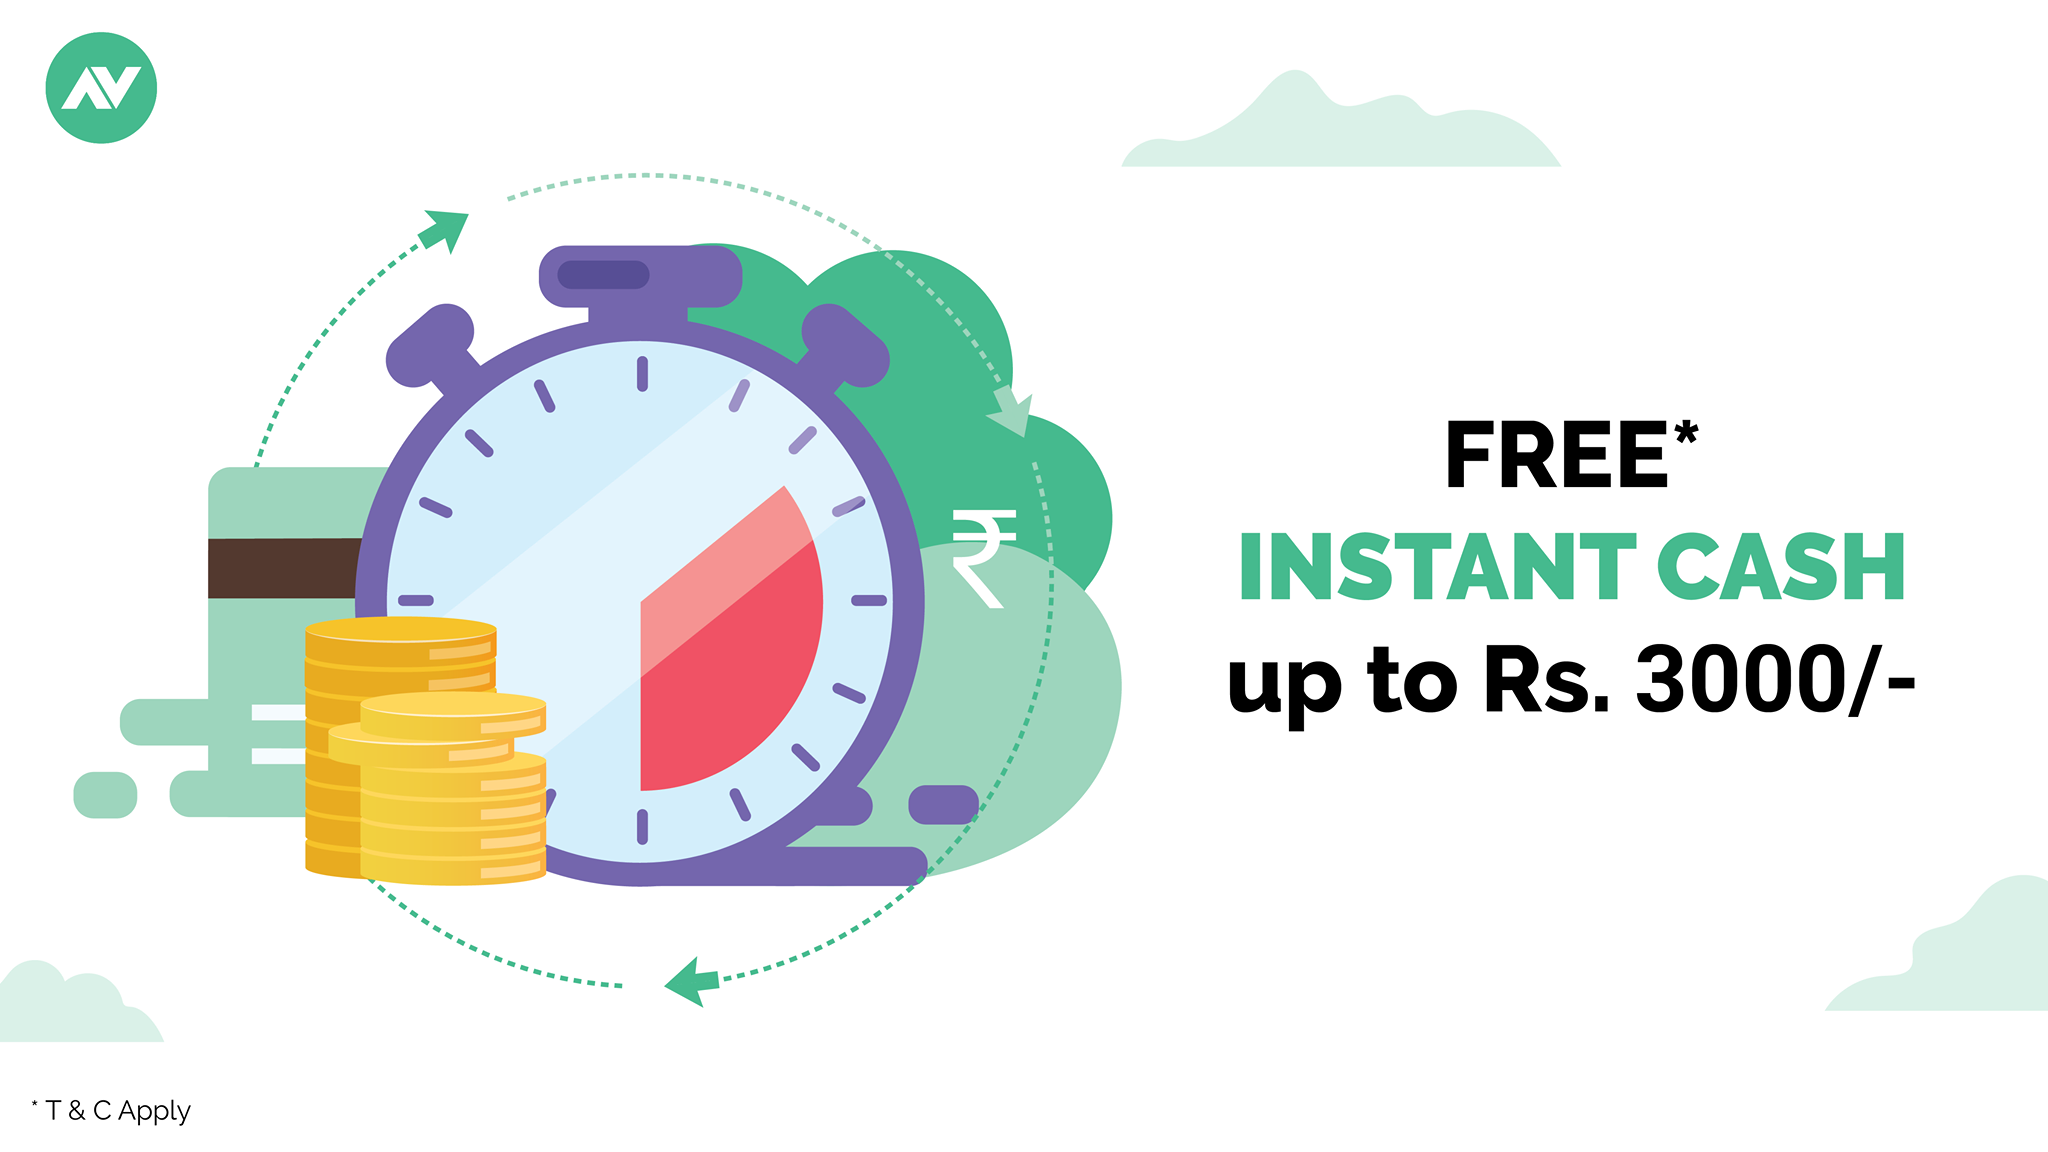 Get Inr 3000 Instant Cash From The Best Personal Loan App In India Instant Cash Finance Blog Instant Cash Loans